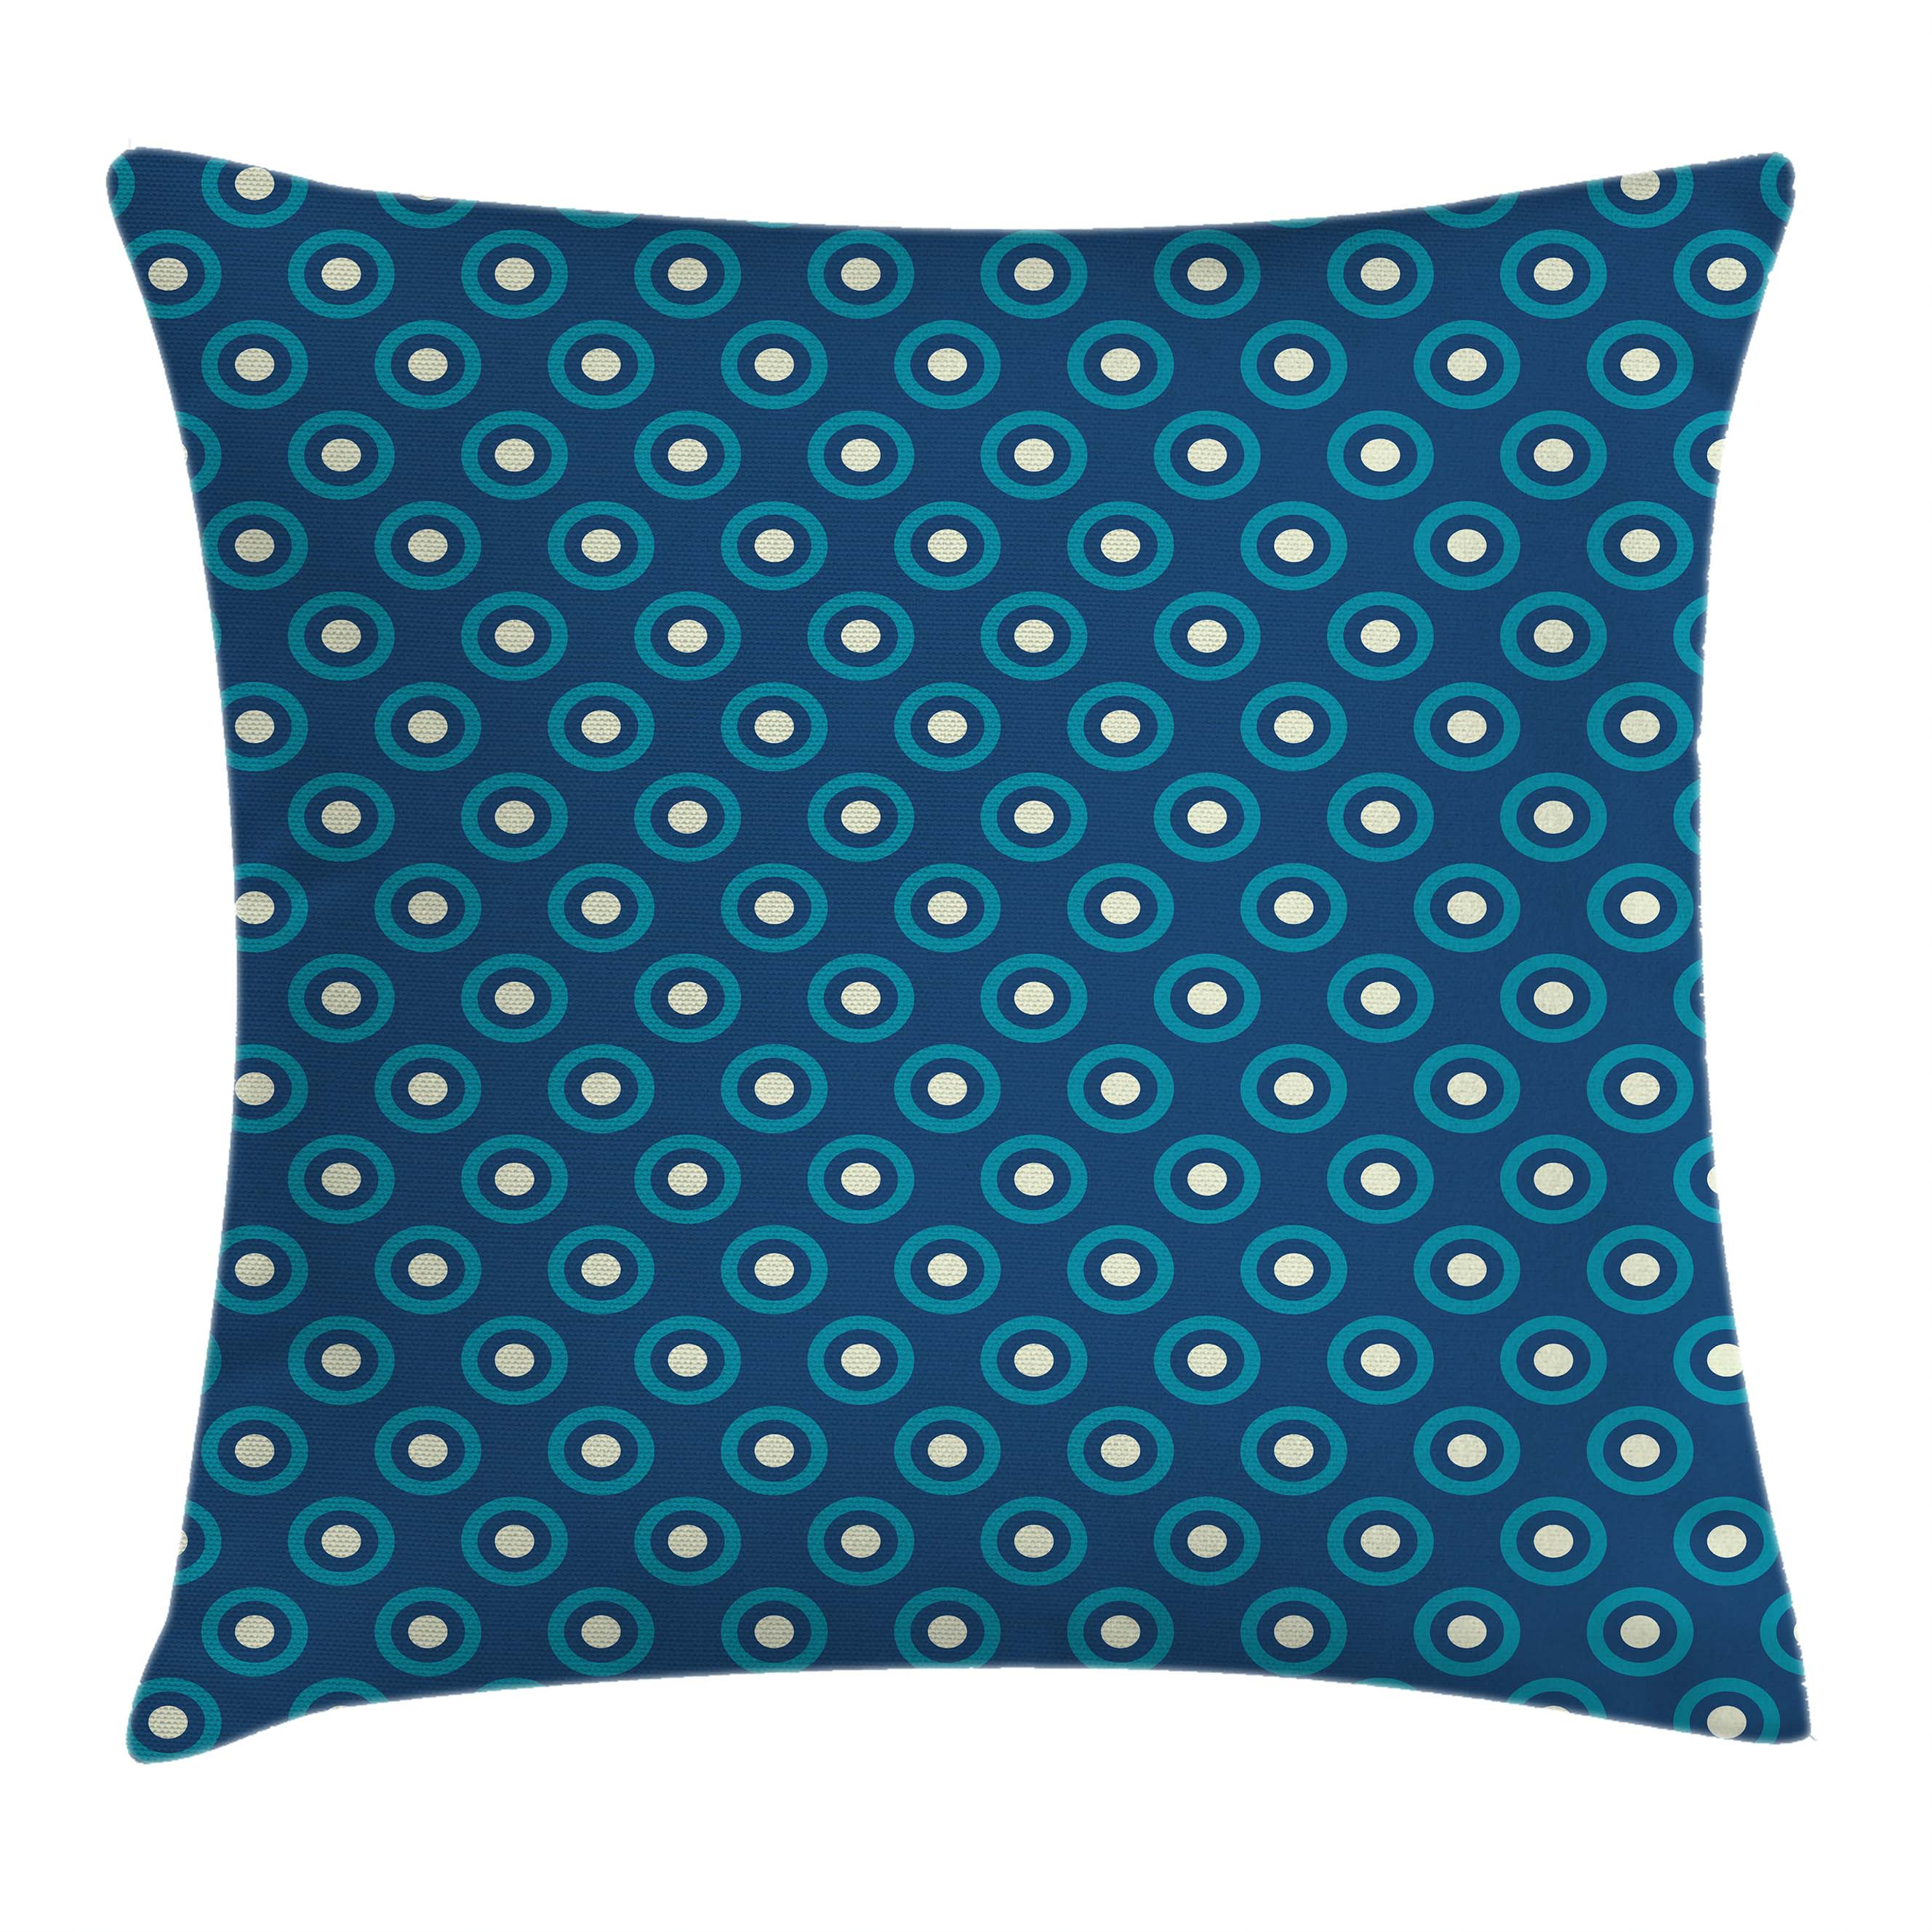 Navy and White Throw Pillow Cushion Cover, Circles with White Polka Dots Ancestral Folk Evil Eye Style Tile, Decorative Square Accent Pillow Case, 18 X 18 Inches, Dark Blue Teal White, by Ambesonne